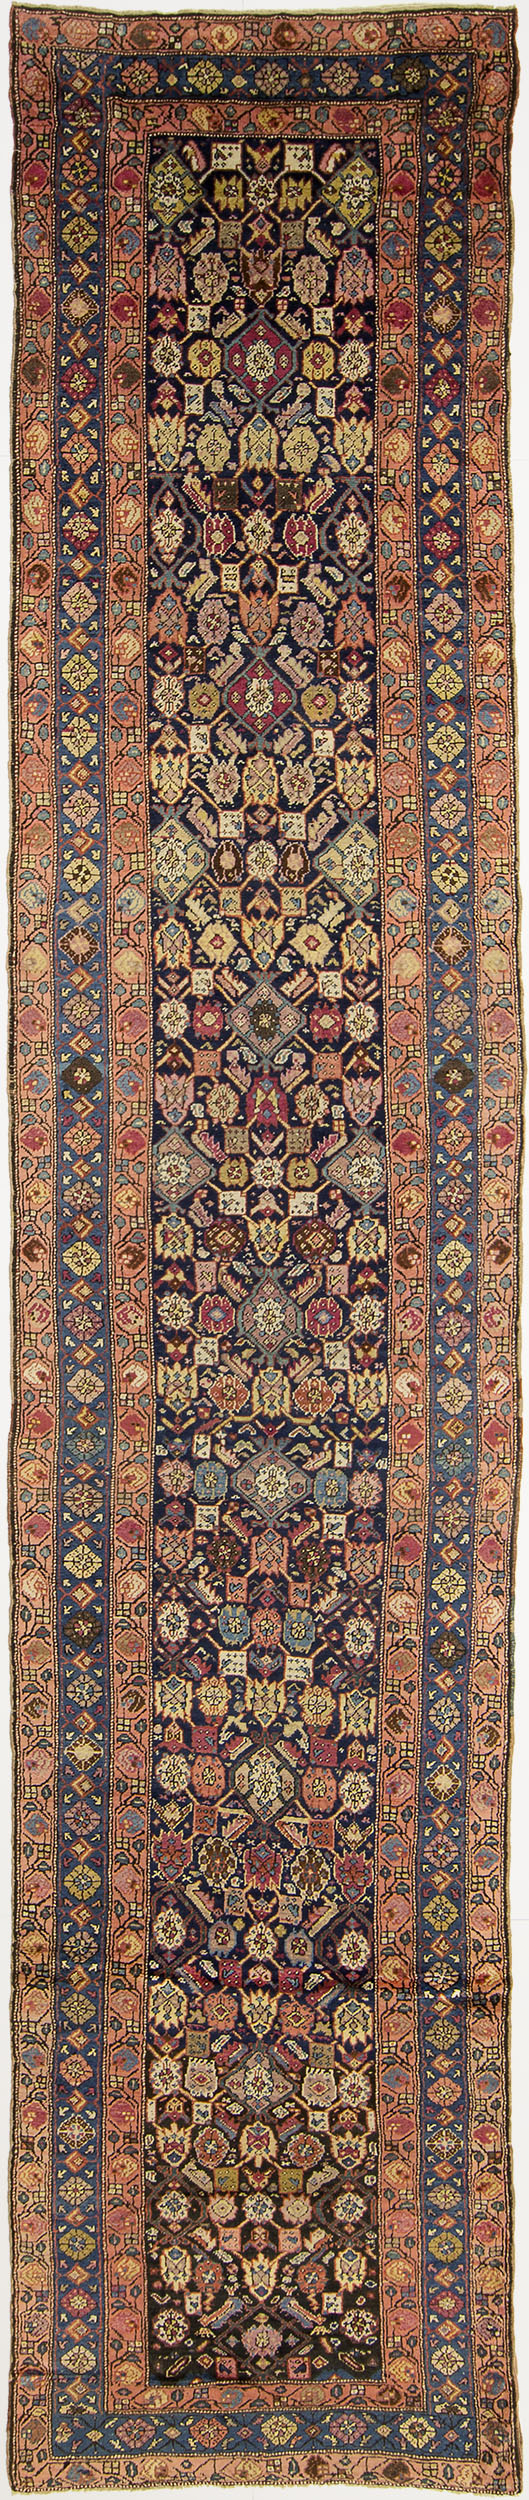 "Bakshaish Runner 17' 0"" x 3' 2"""